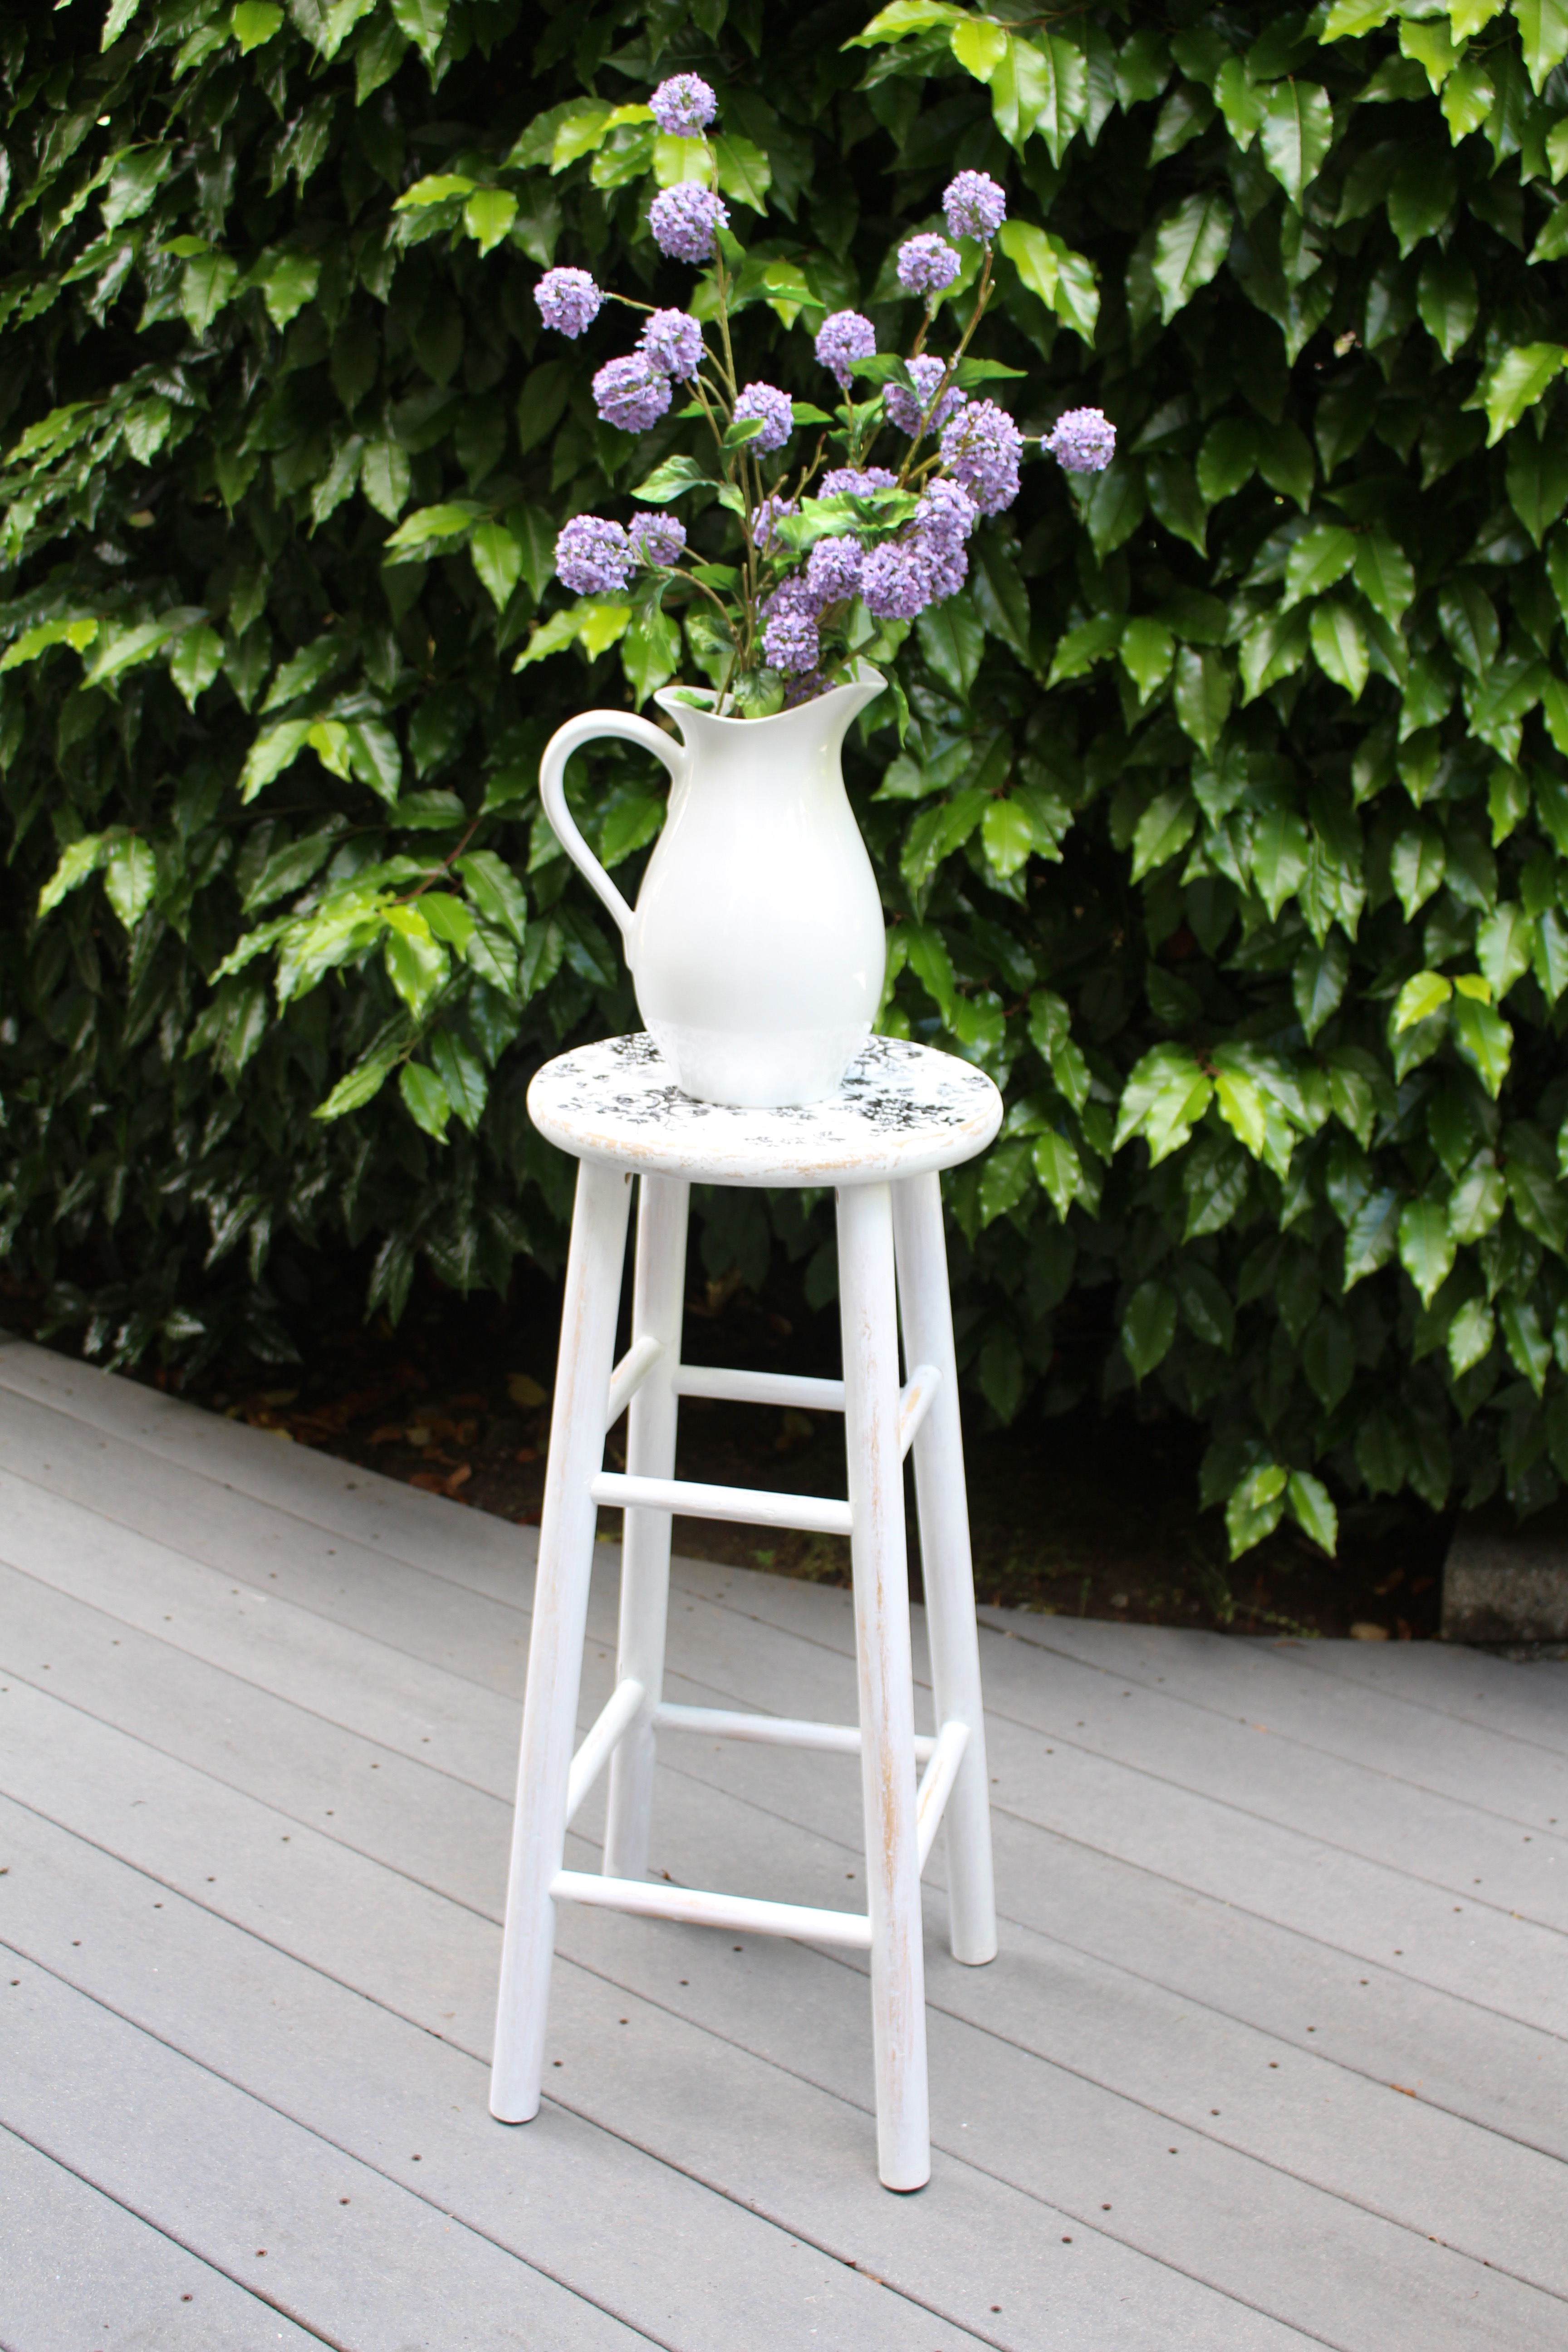 Farmhouse Stool from Yesterday on Tuesday